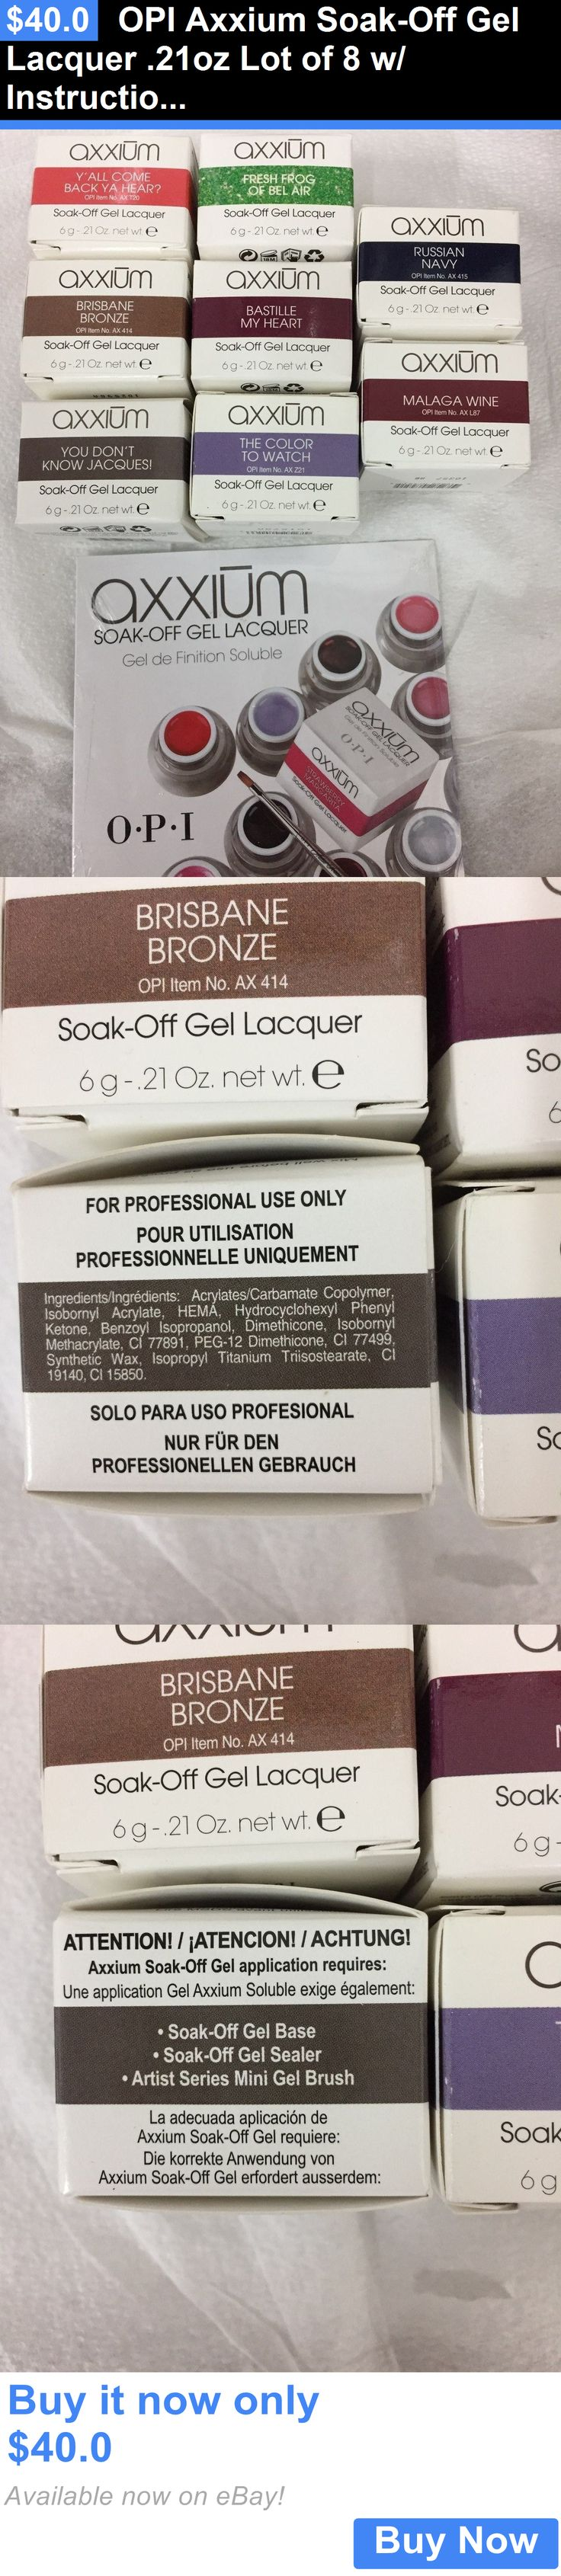 Gel Nails: Opi Axxium Soak-Off Gel Lacquer .21Oz Lot Of 8 W/ Instructional Dvd BUY IT NOW ONLY: $40.0